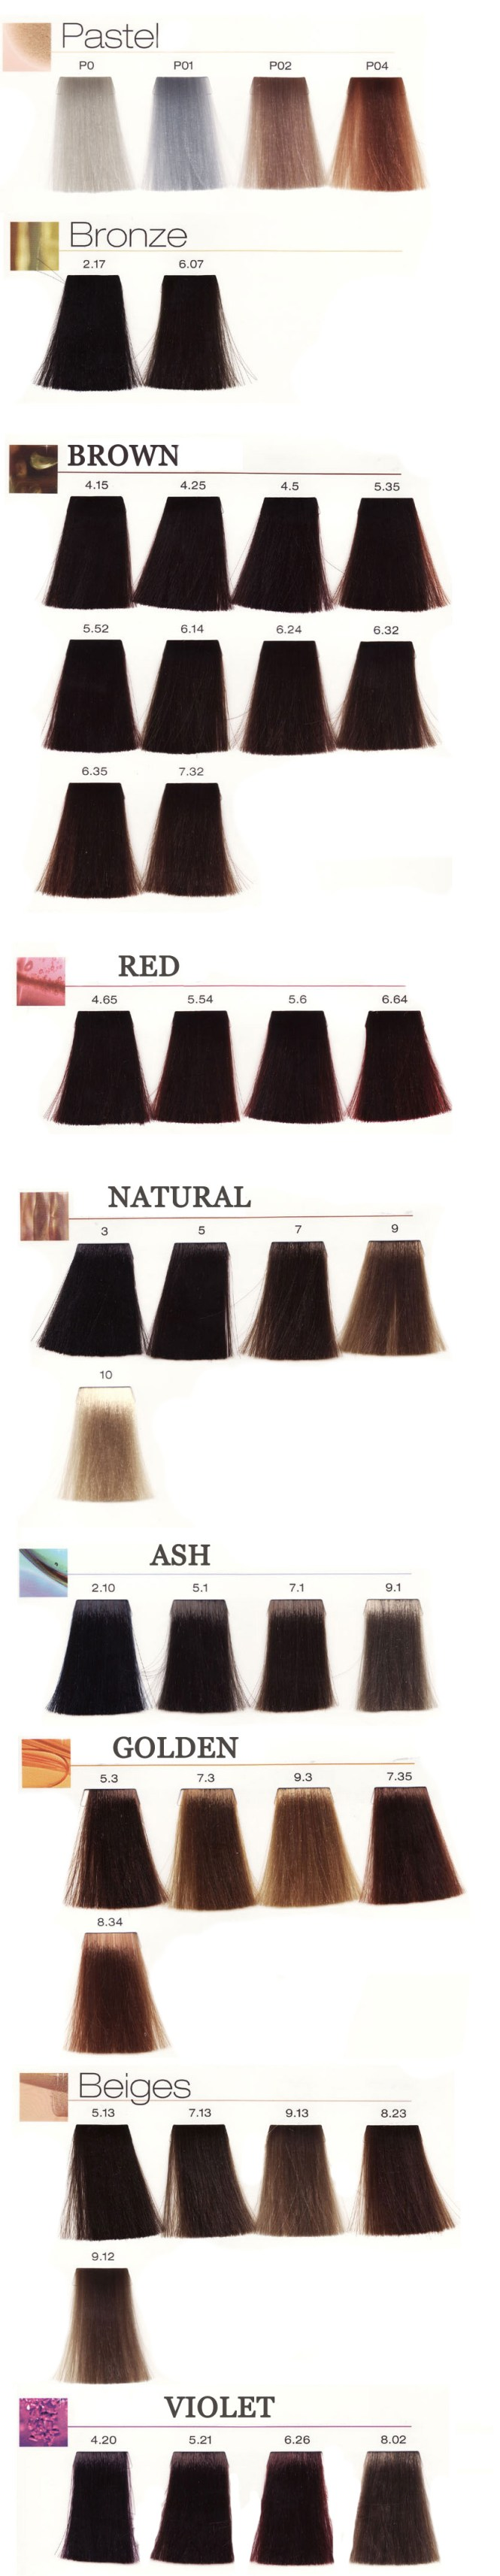 Loreal hair color chart in india best hair color inspiration 2018 l oreal paris excellence cream hair colour no 425 aishwarya s nvjuhfo Image collections